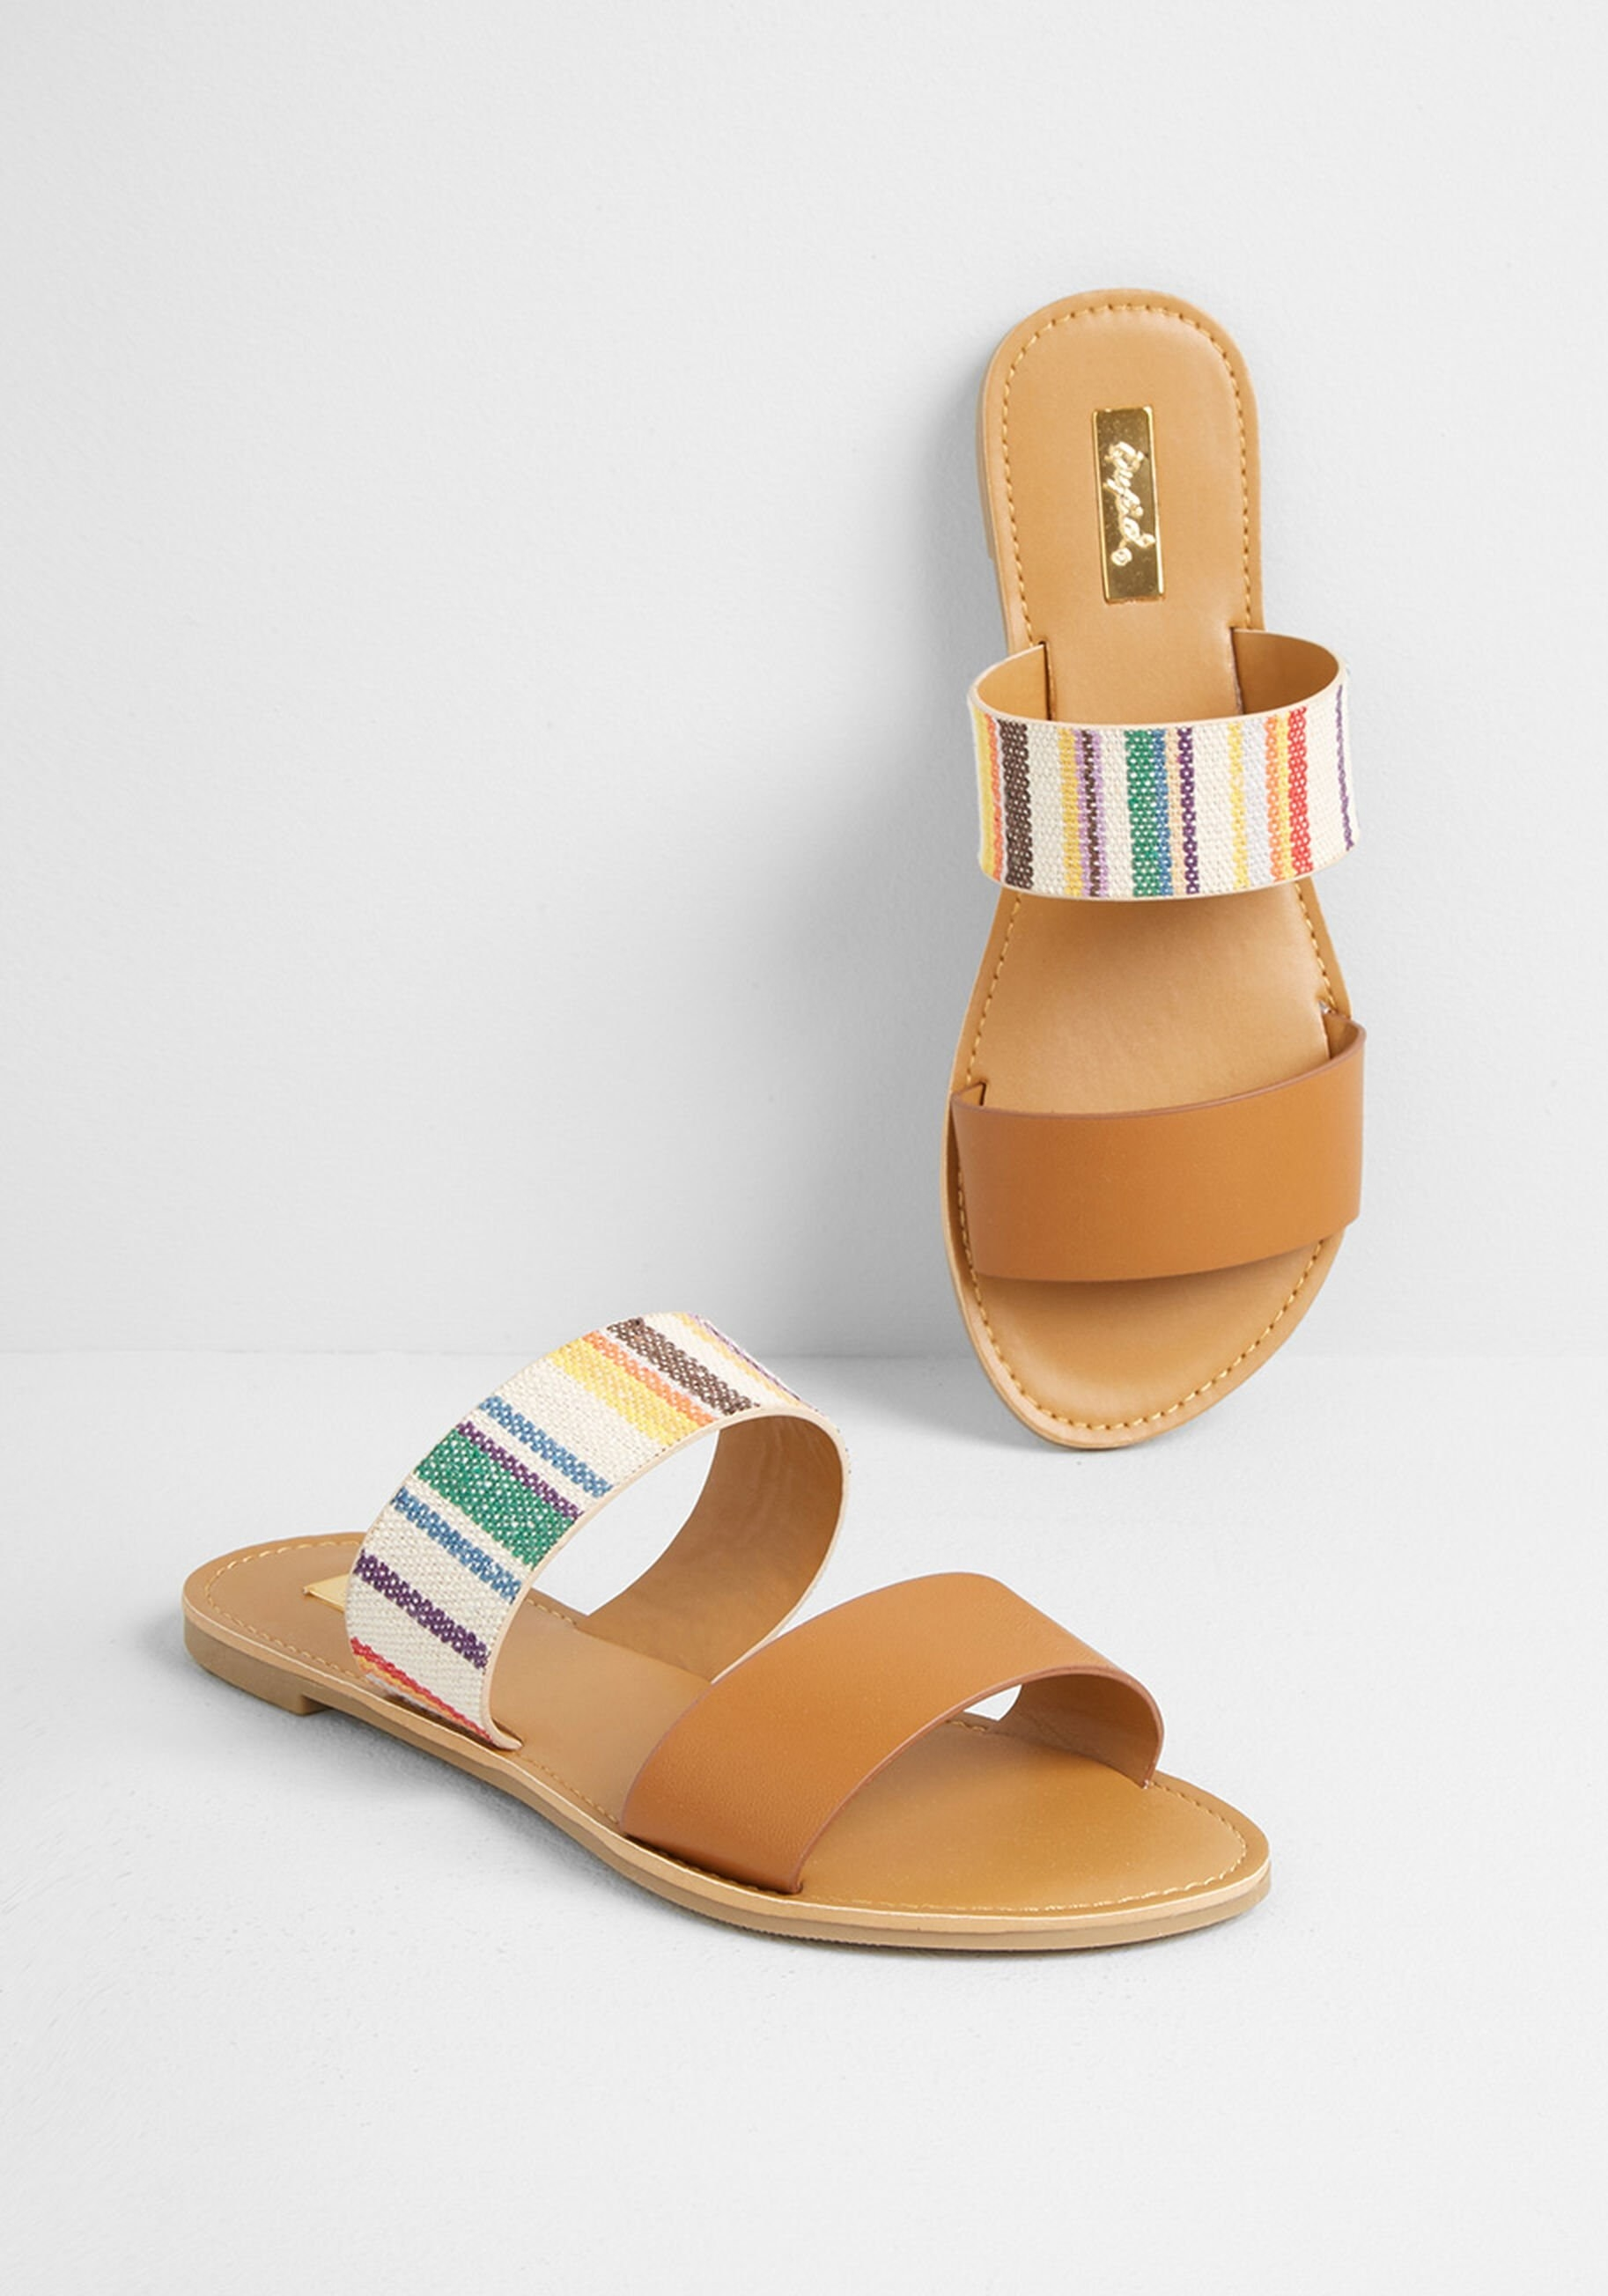 The backless sandals with two front bands, one band has rainbow stripes